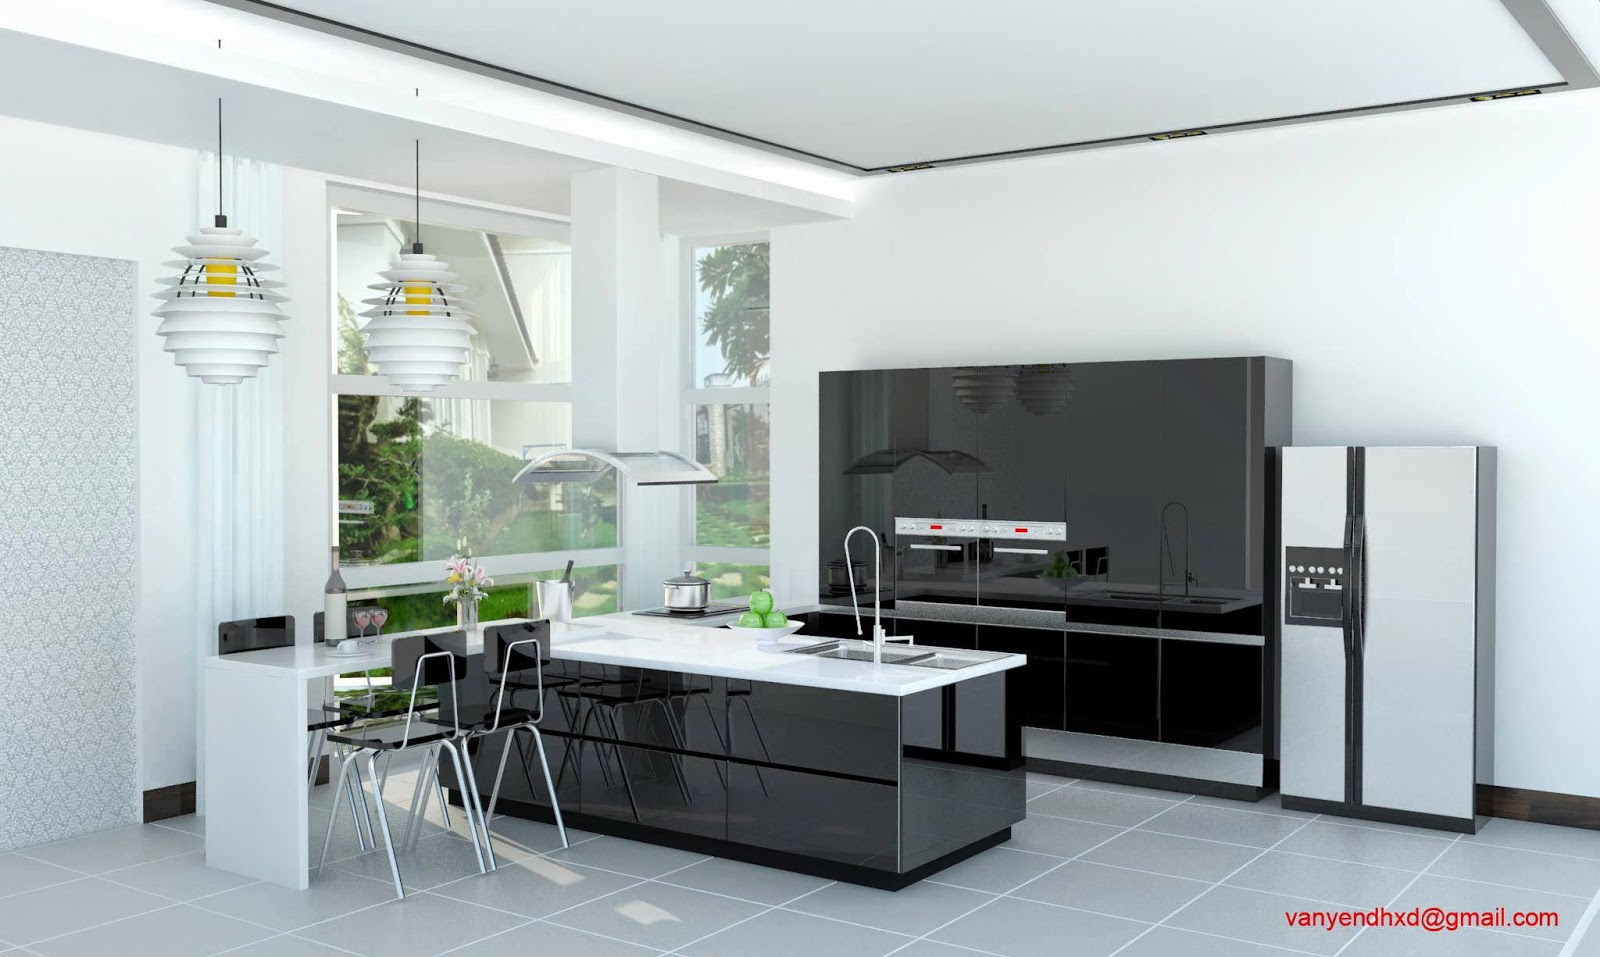 enlarges the image to see the details - Sketchup Kitchen Design